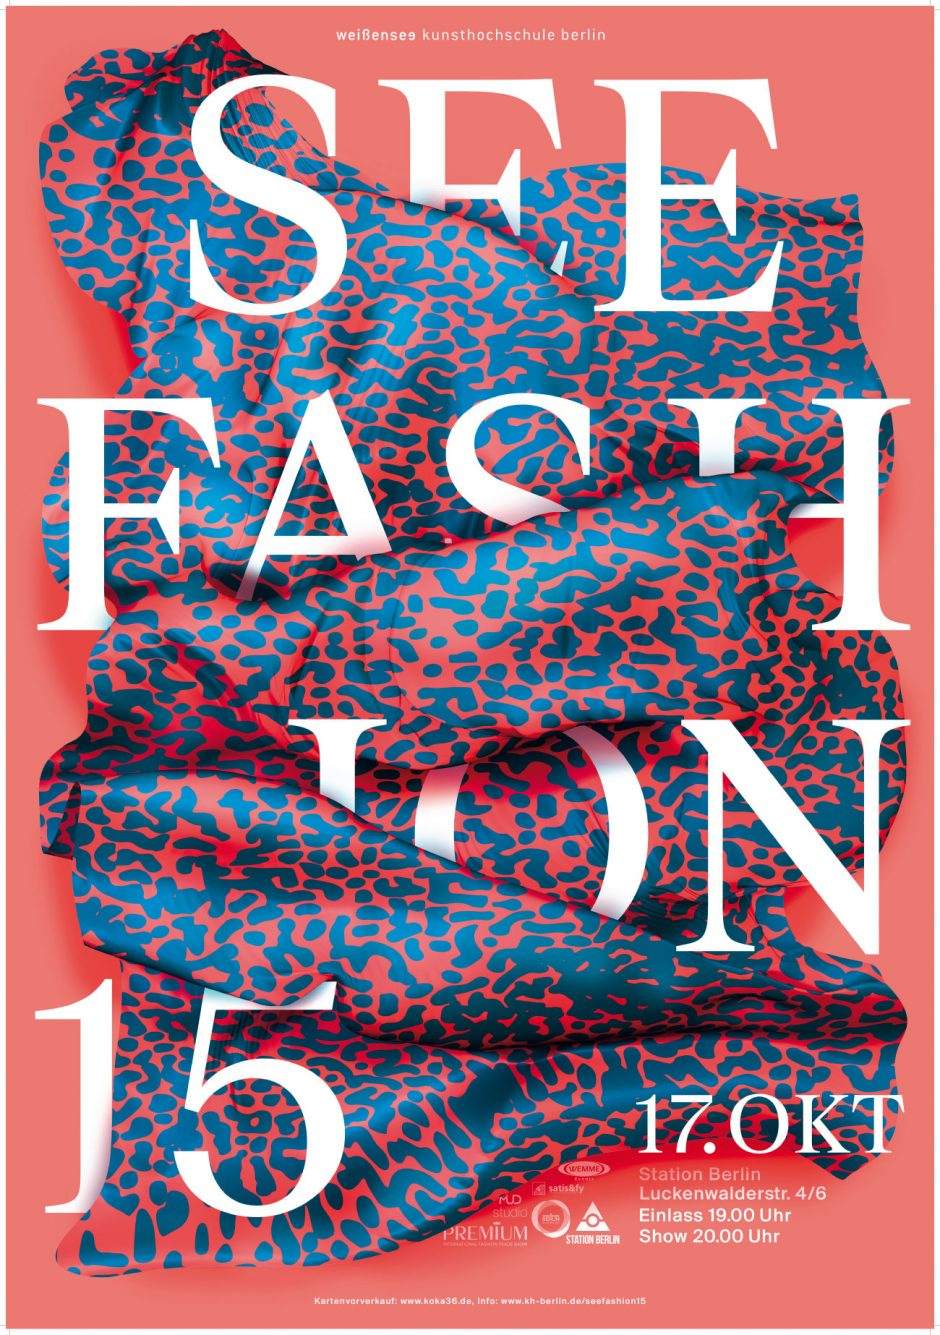 Seefashion